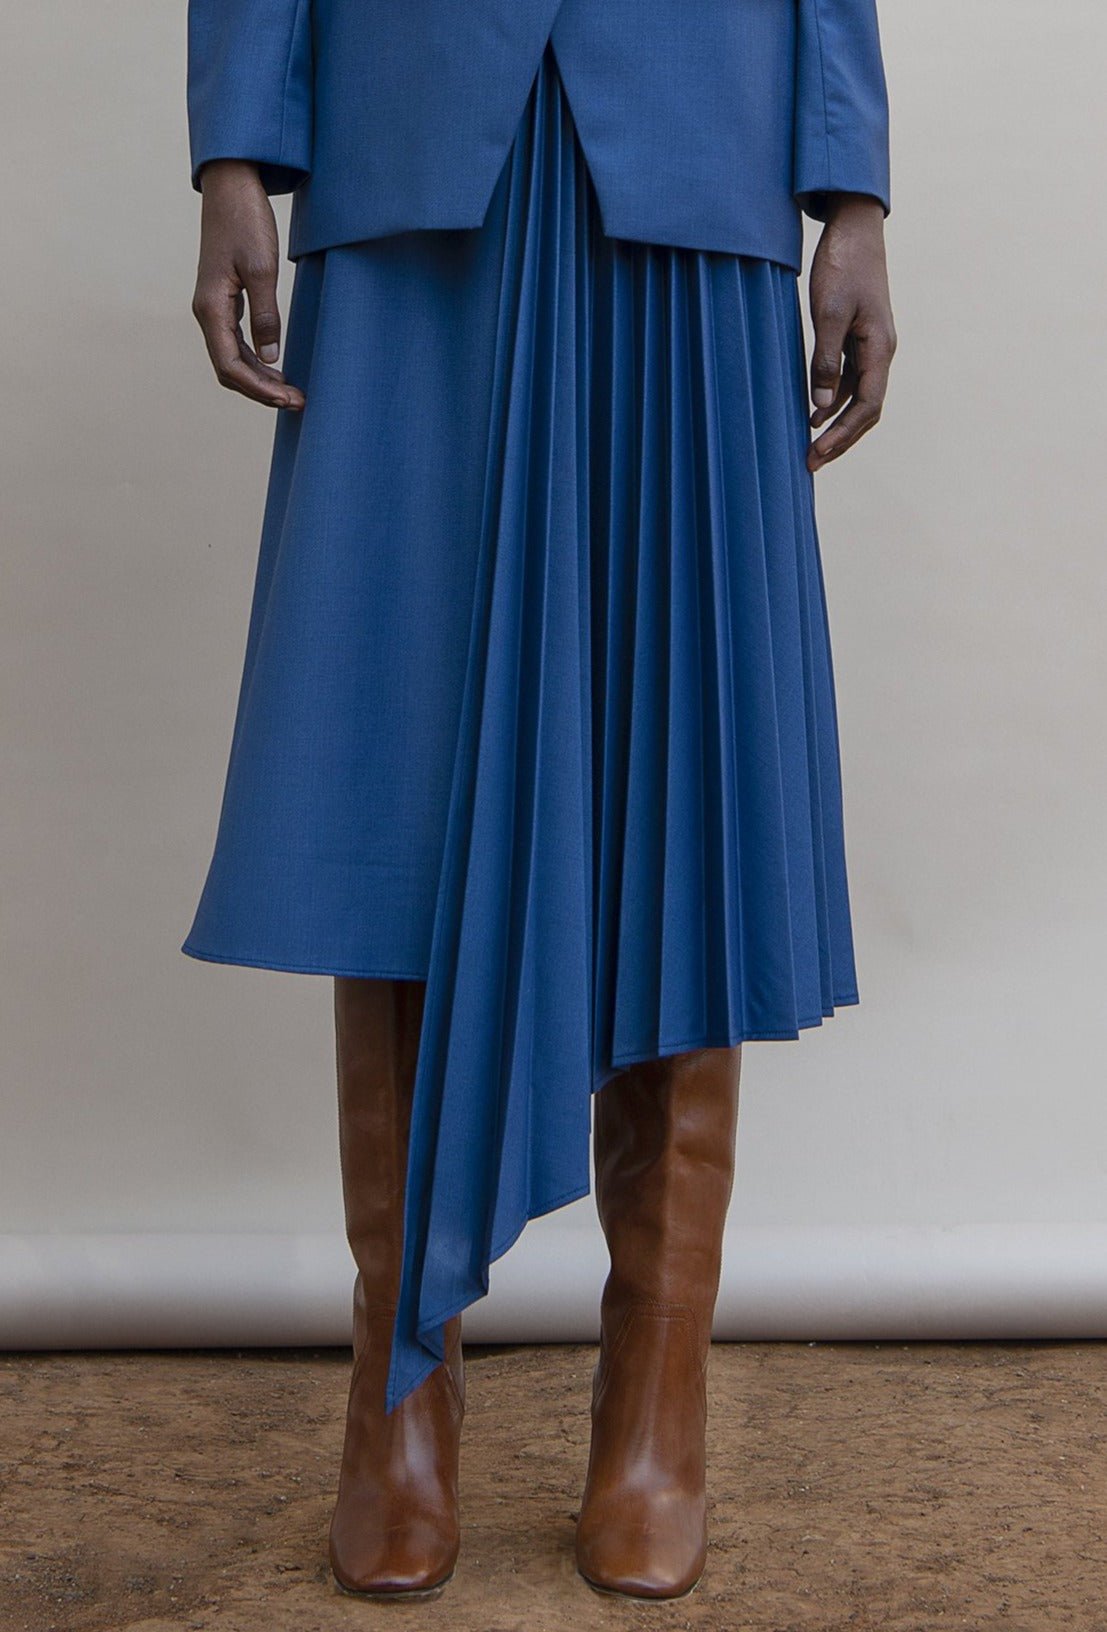 MmusoMaxwell admiral blue side pleated skirt